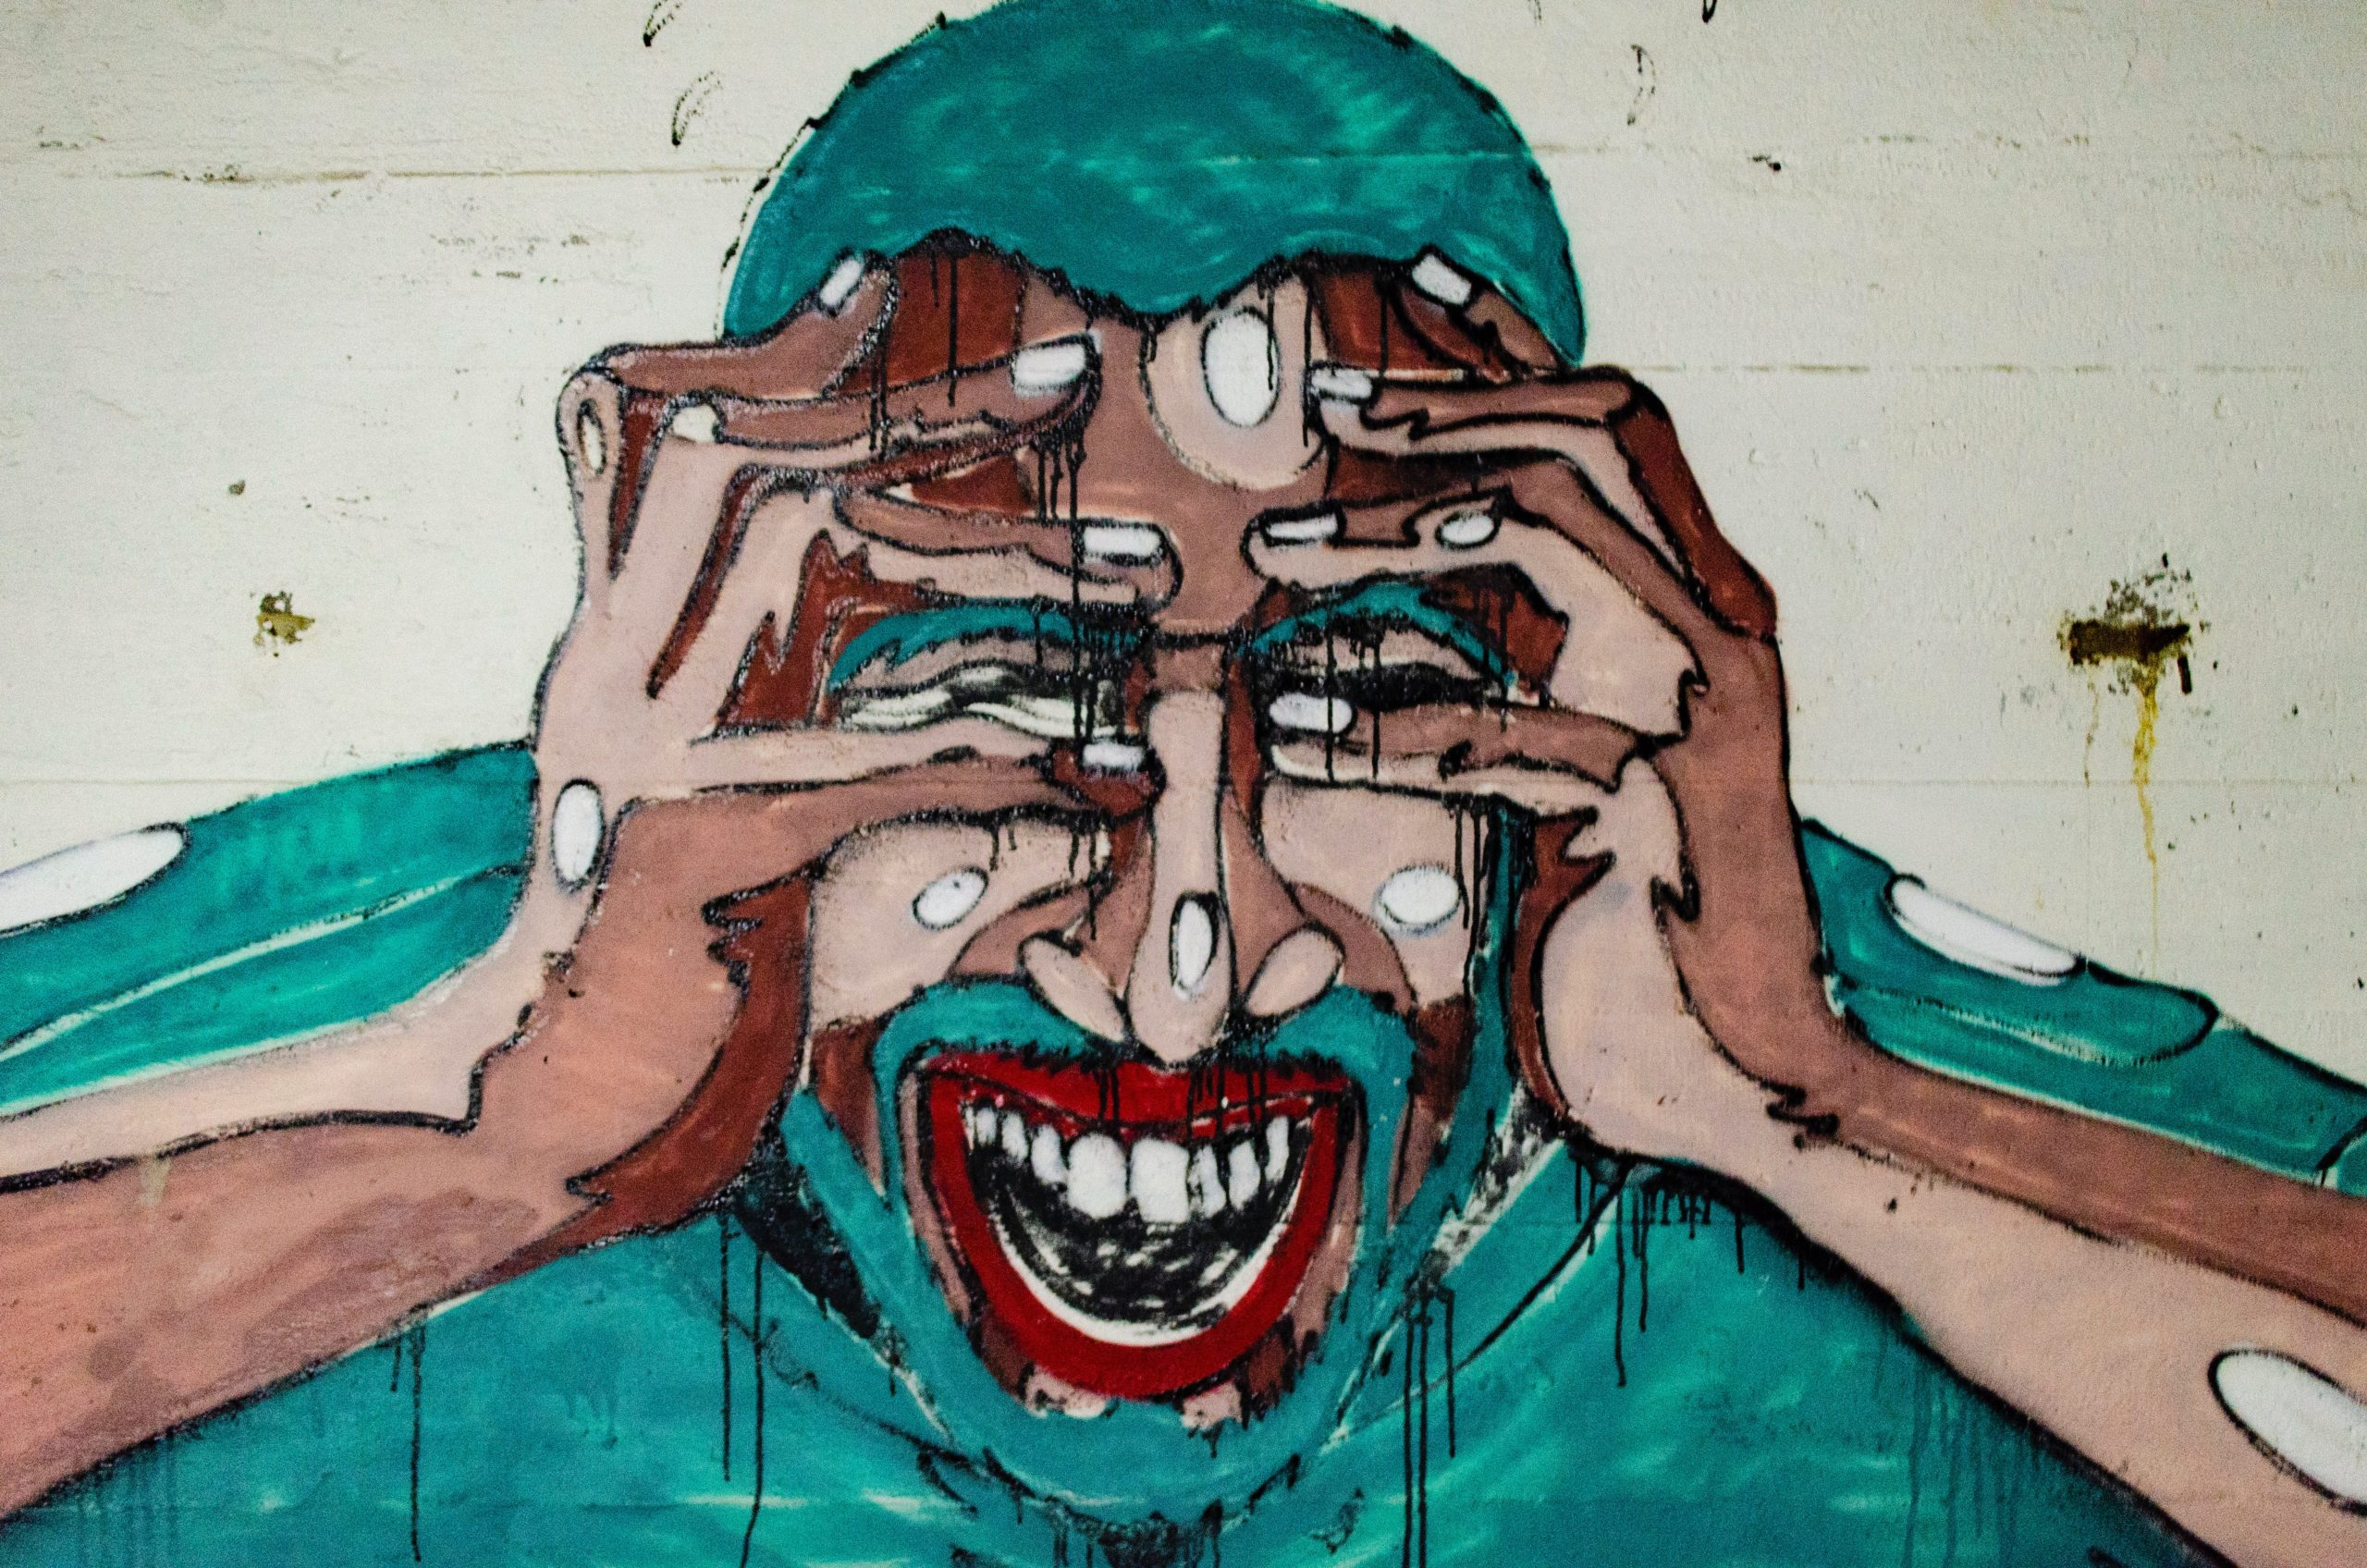 Picture of a graffiti art on a gray wall